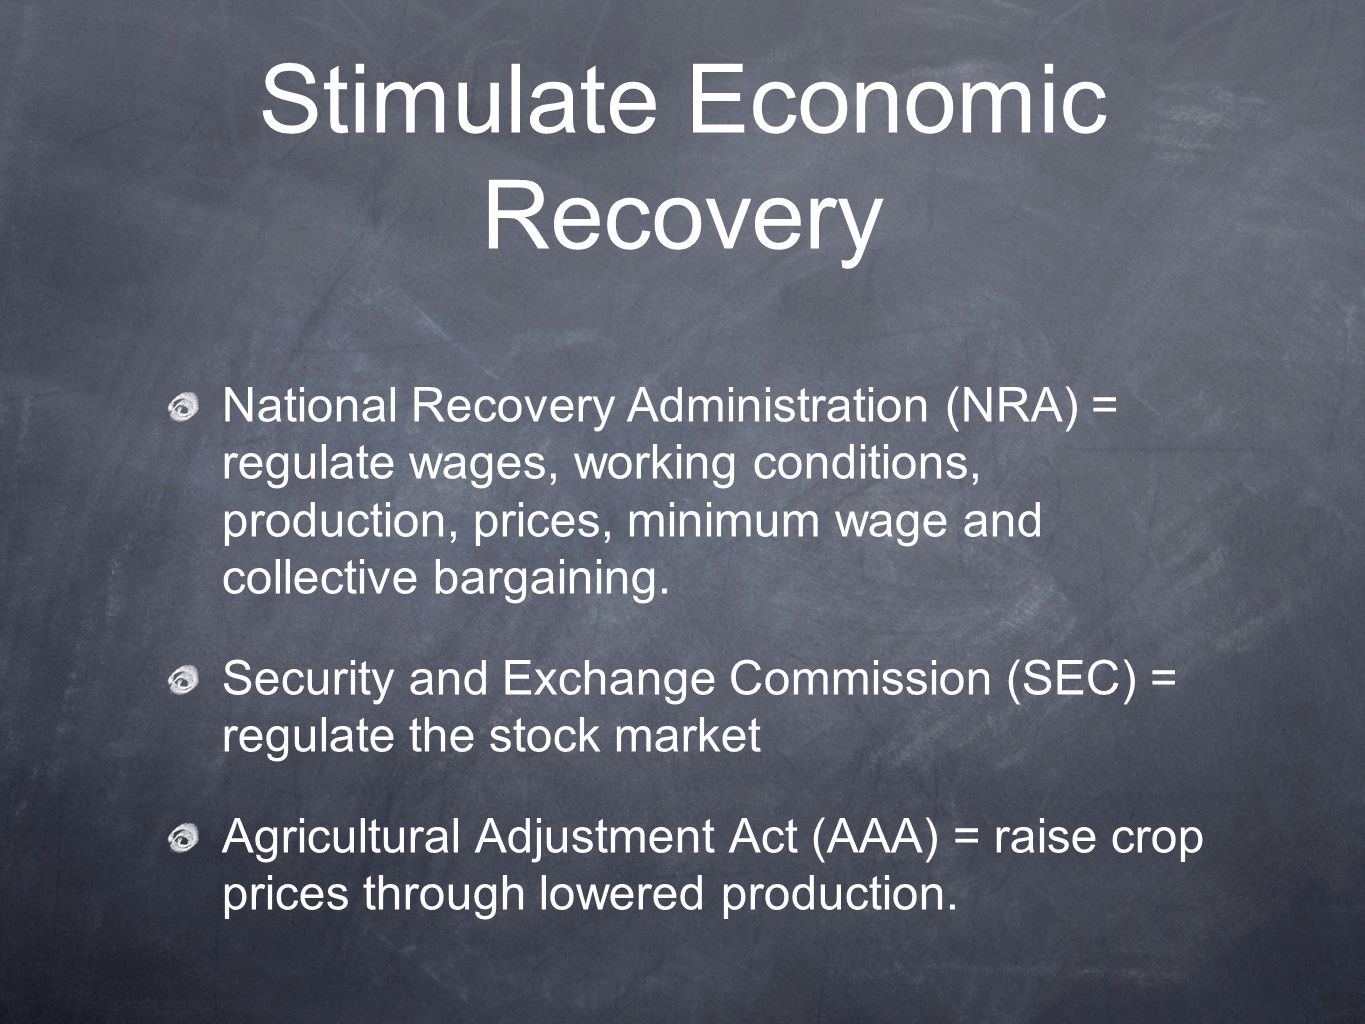 Stimulate Economic Recovery National Recovery Administration (NRA) = regulate wages, working conditions, production, prices, minimum wage and collective bargaining.